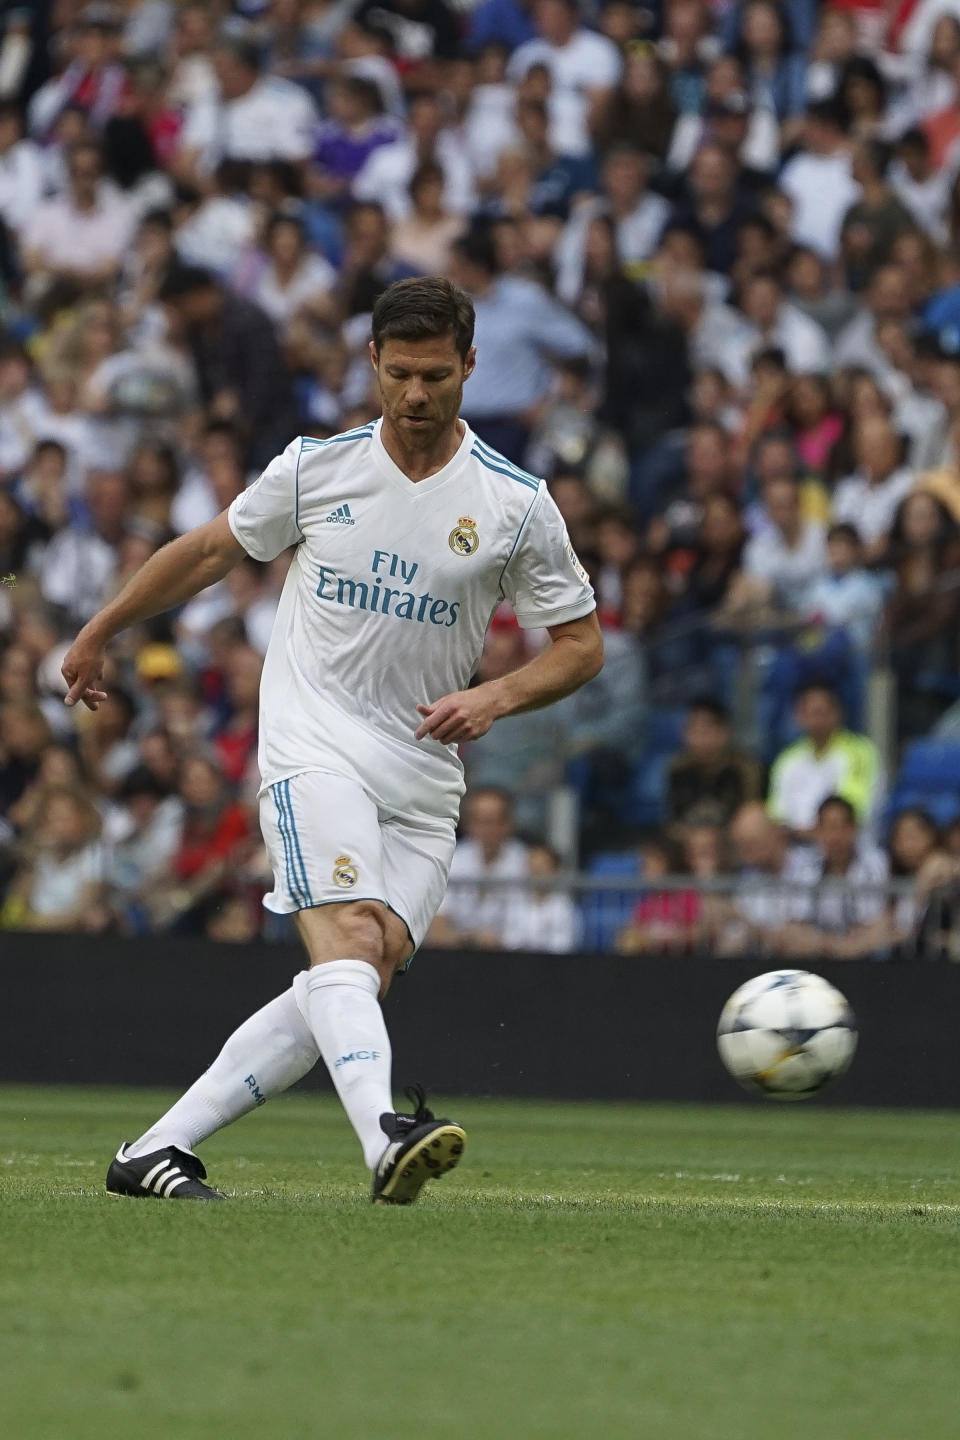 Xabi Alonso  of Real Madrid Legends during the Corazon Classic match between Real Madrid Legends and Asenal Legends at Estadio Santiago Bernabeu on June 3, 2018 in Madrid, Spain. (Photo by Oscar Gonzalez/NurPhoto via Getty Images)